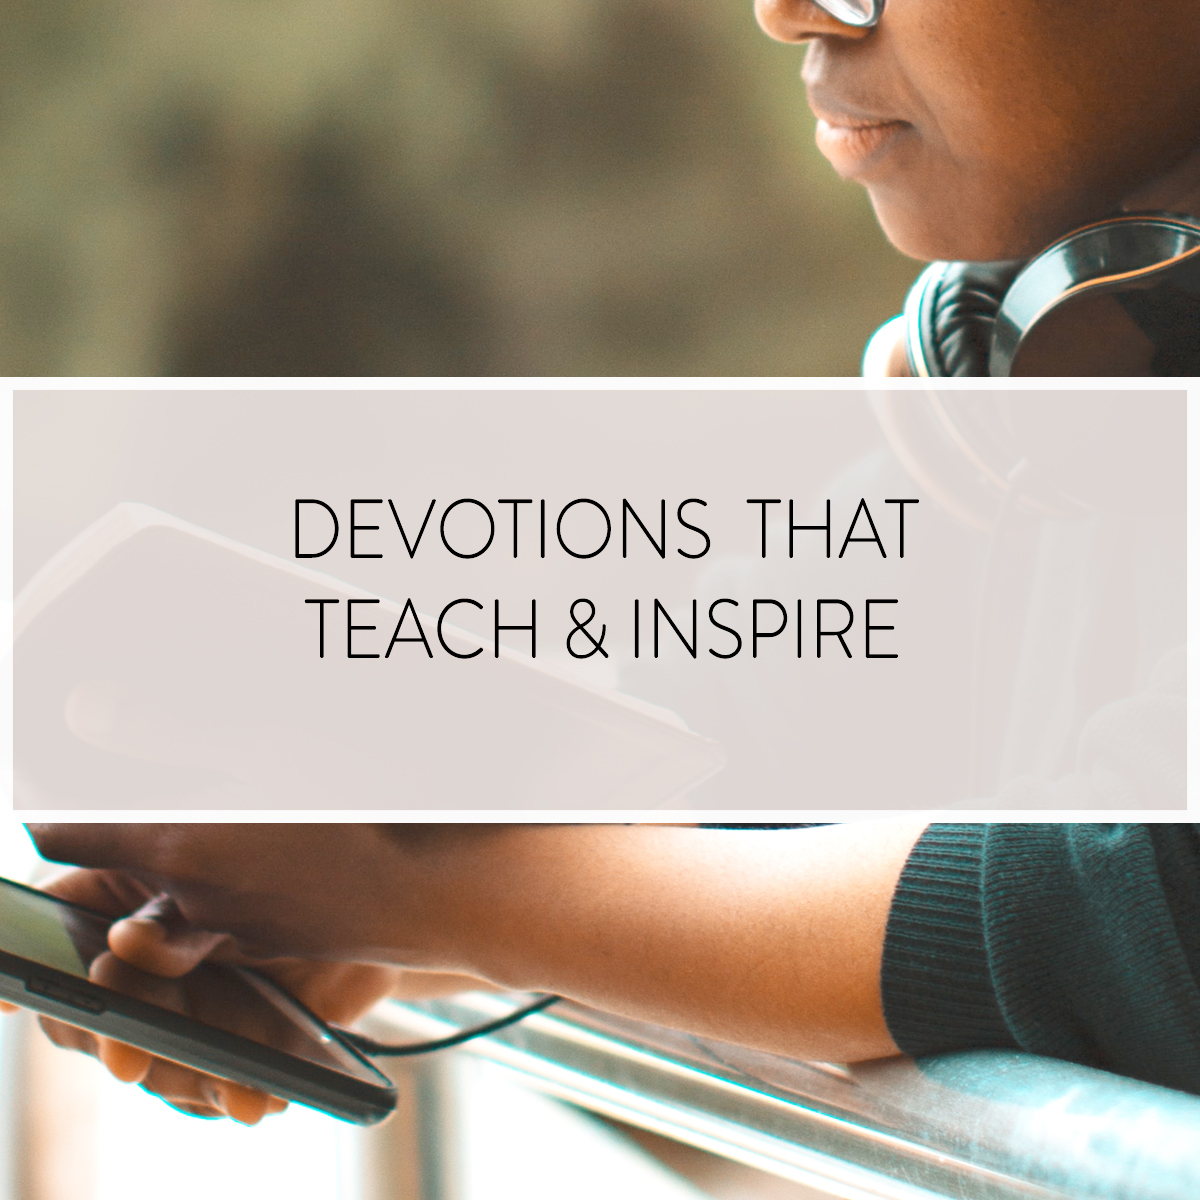 The devotions at A Symphony of Praise help you to Learn the Word, Apply the Word, and Live the Word of God with confidence.